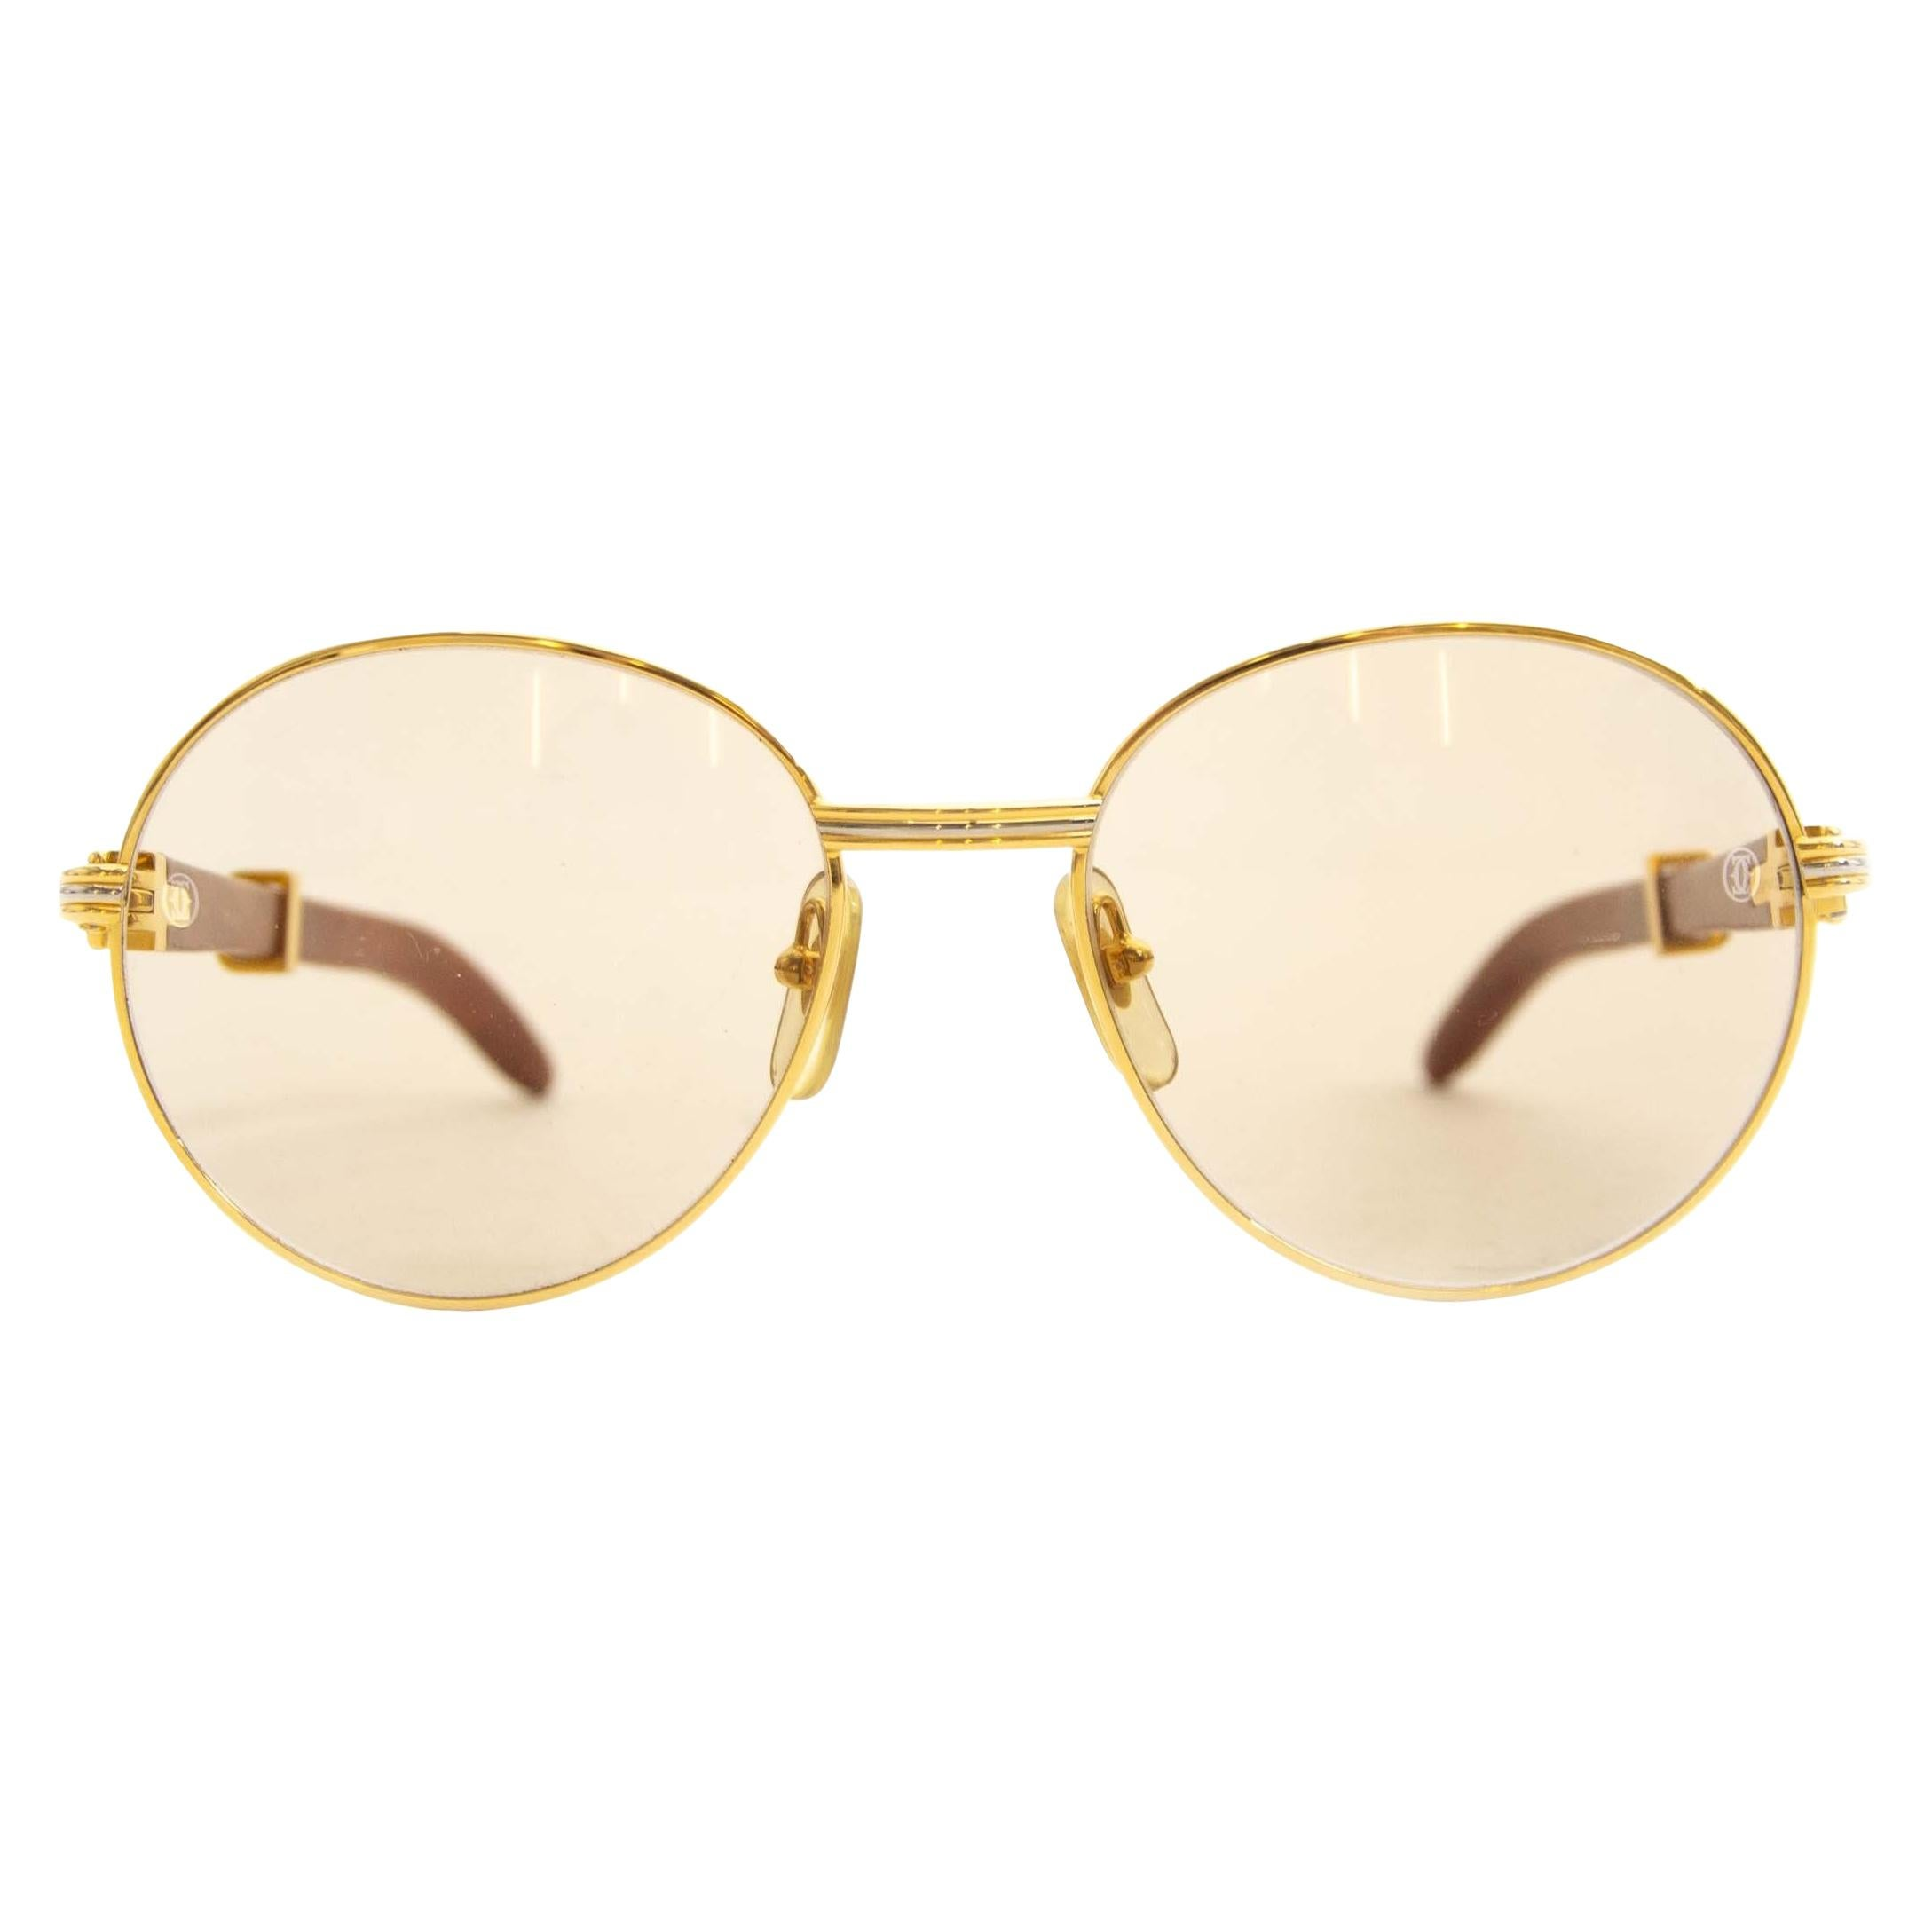 22fab2571e6 Vintage Cartier Sunglasses - 159 For Sale at 1stdibs